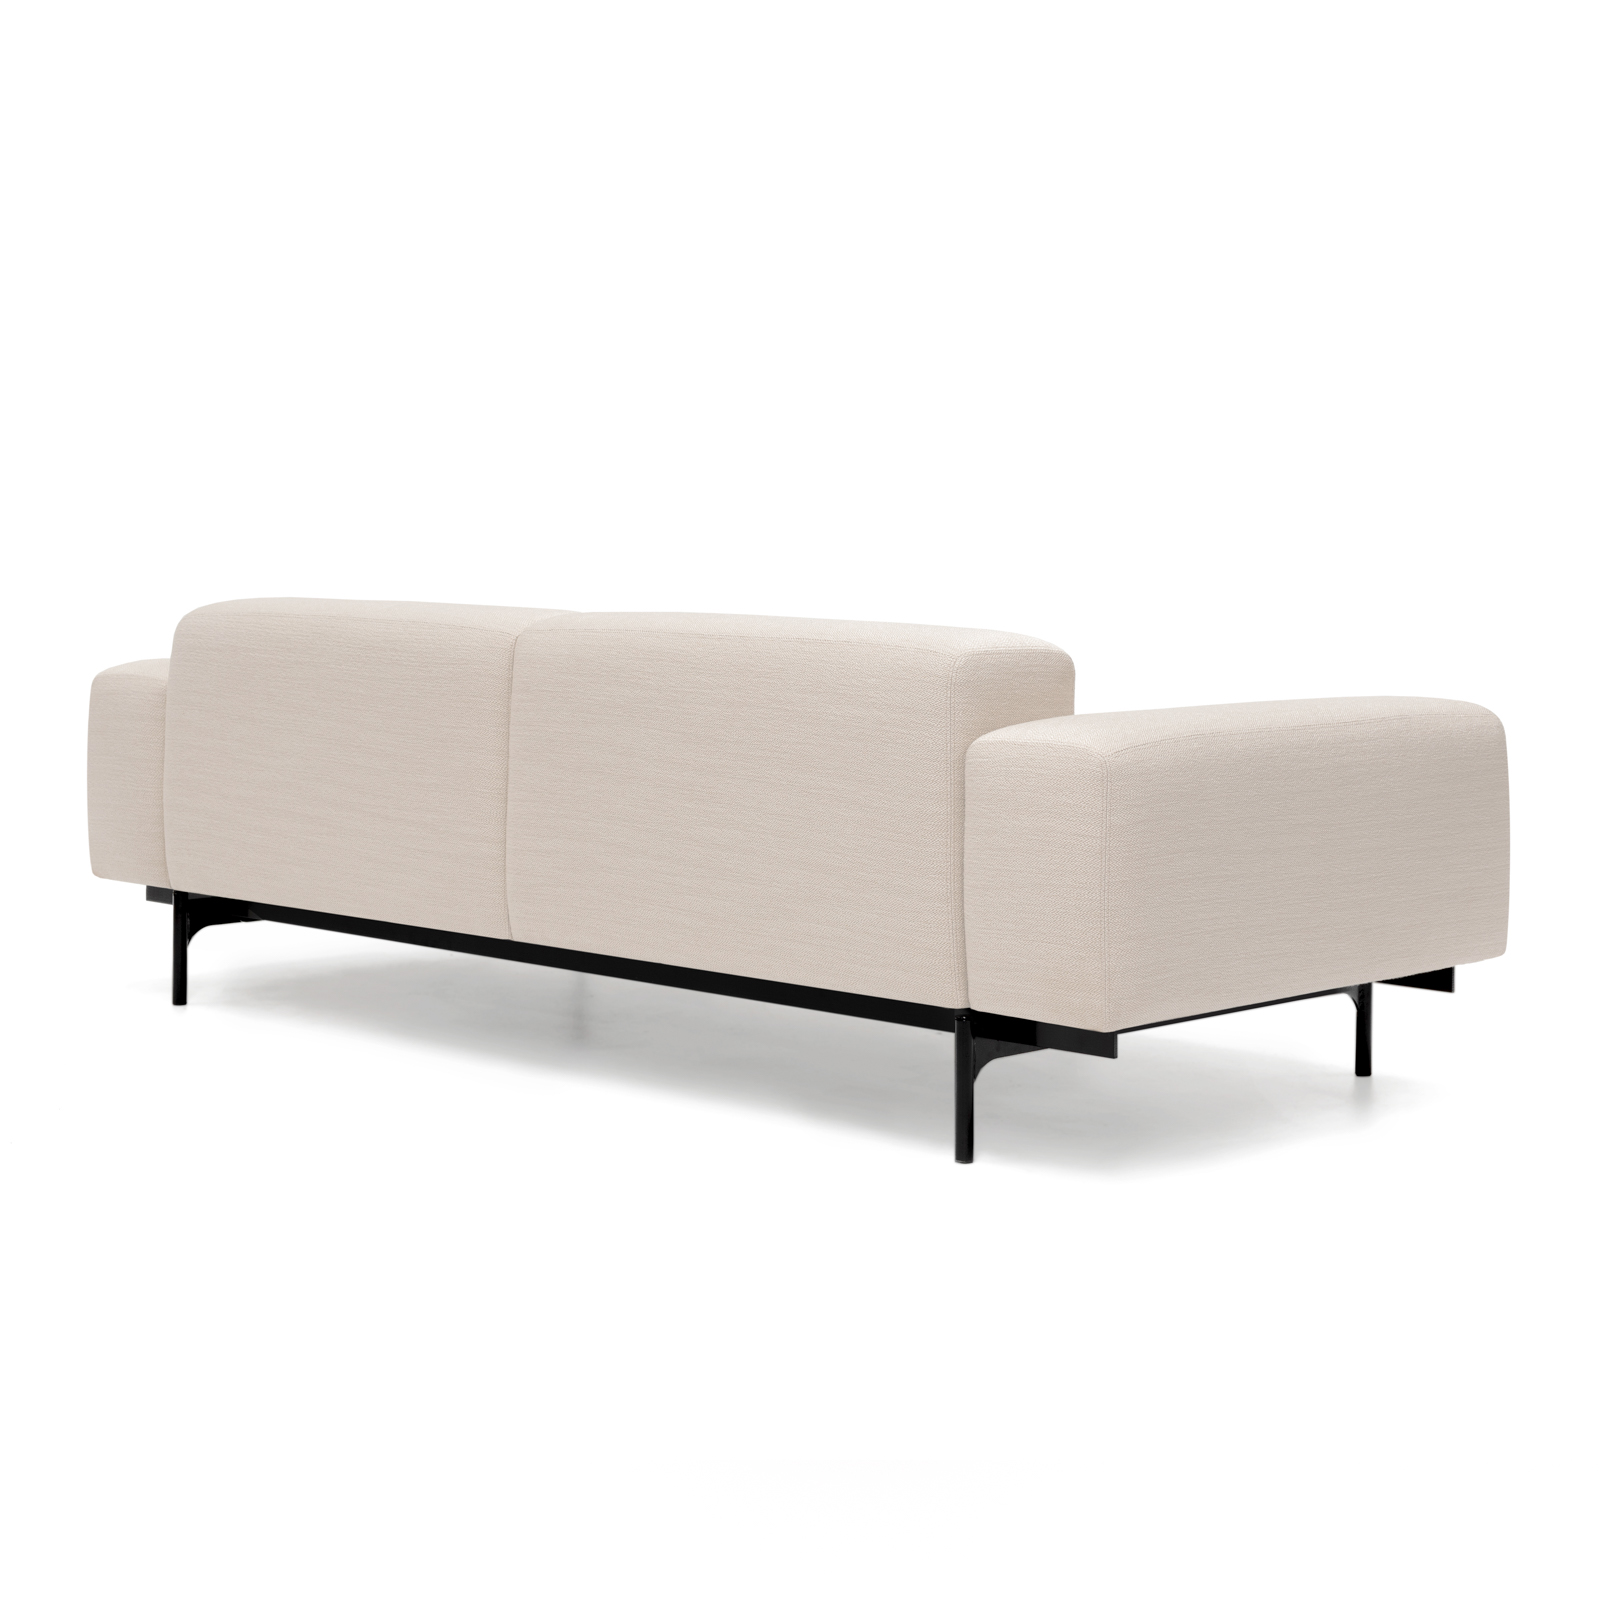 Permanent Future Perry Sofa 2.5 Seater Pure Pumice Pf Sf Pr 2.5 Pp Front View 00005